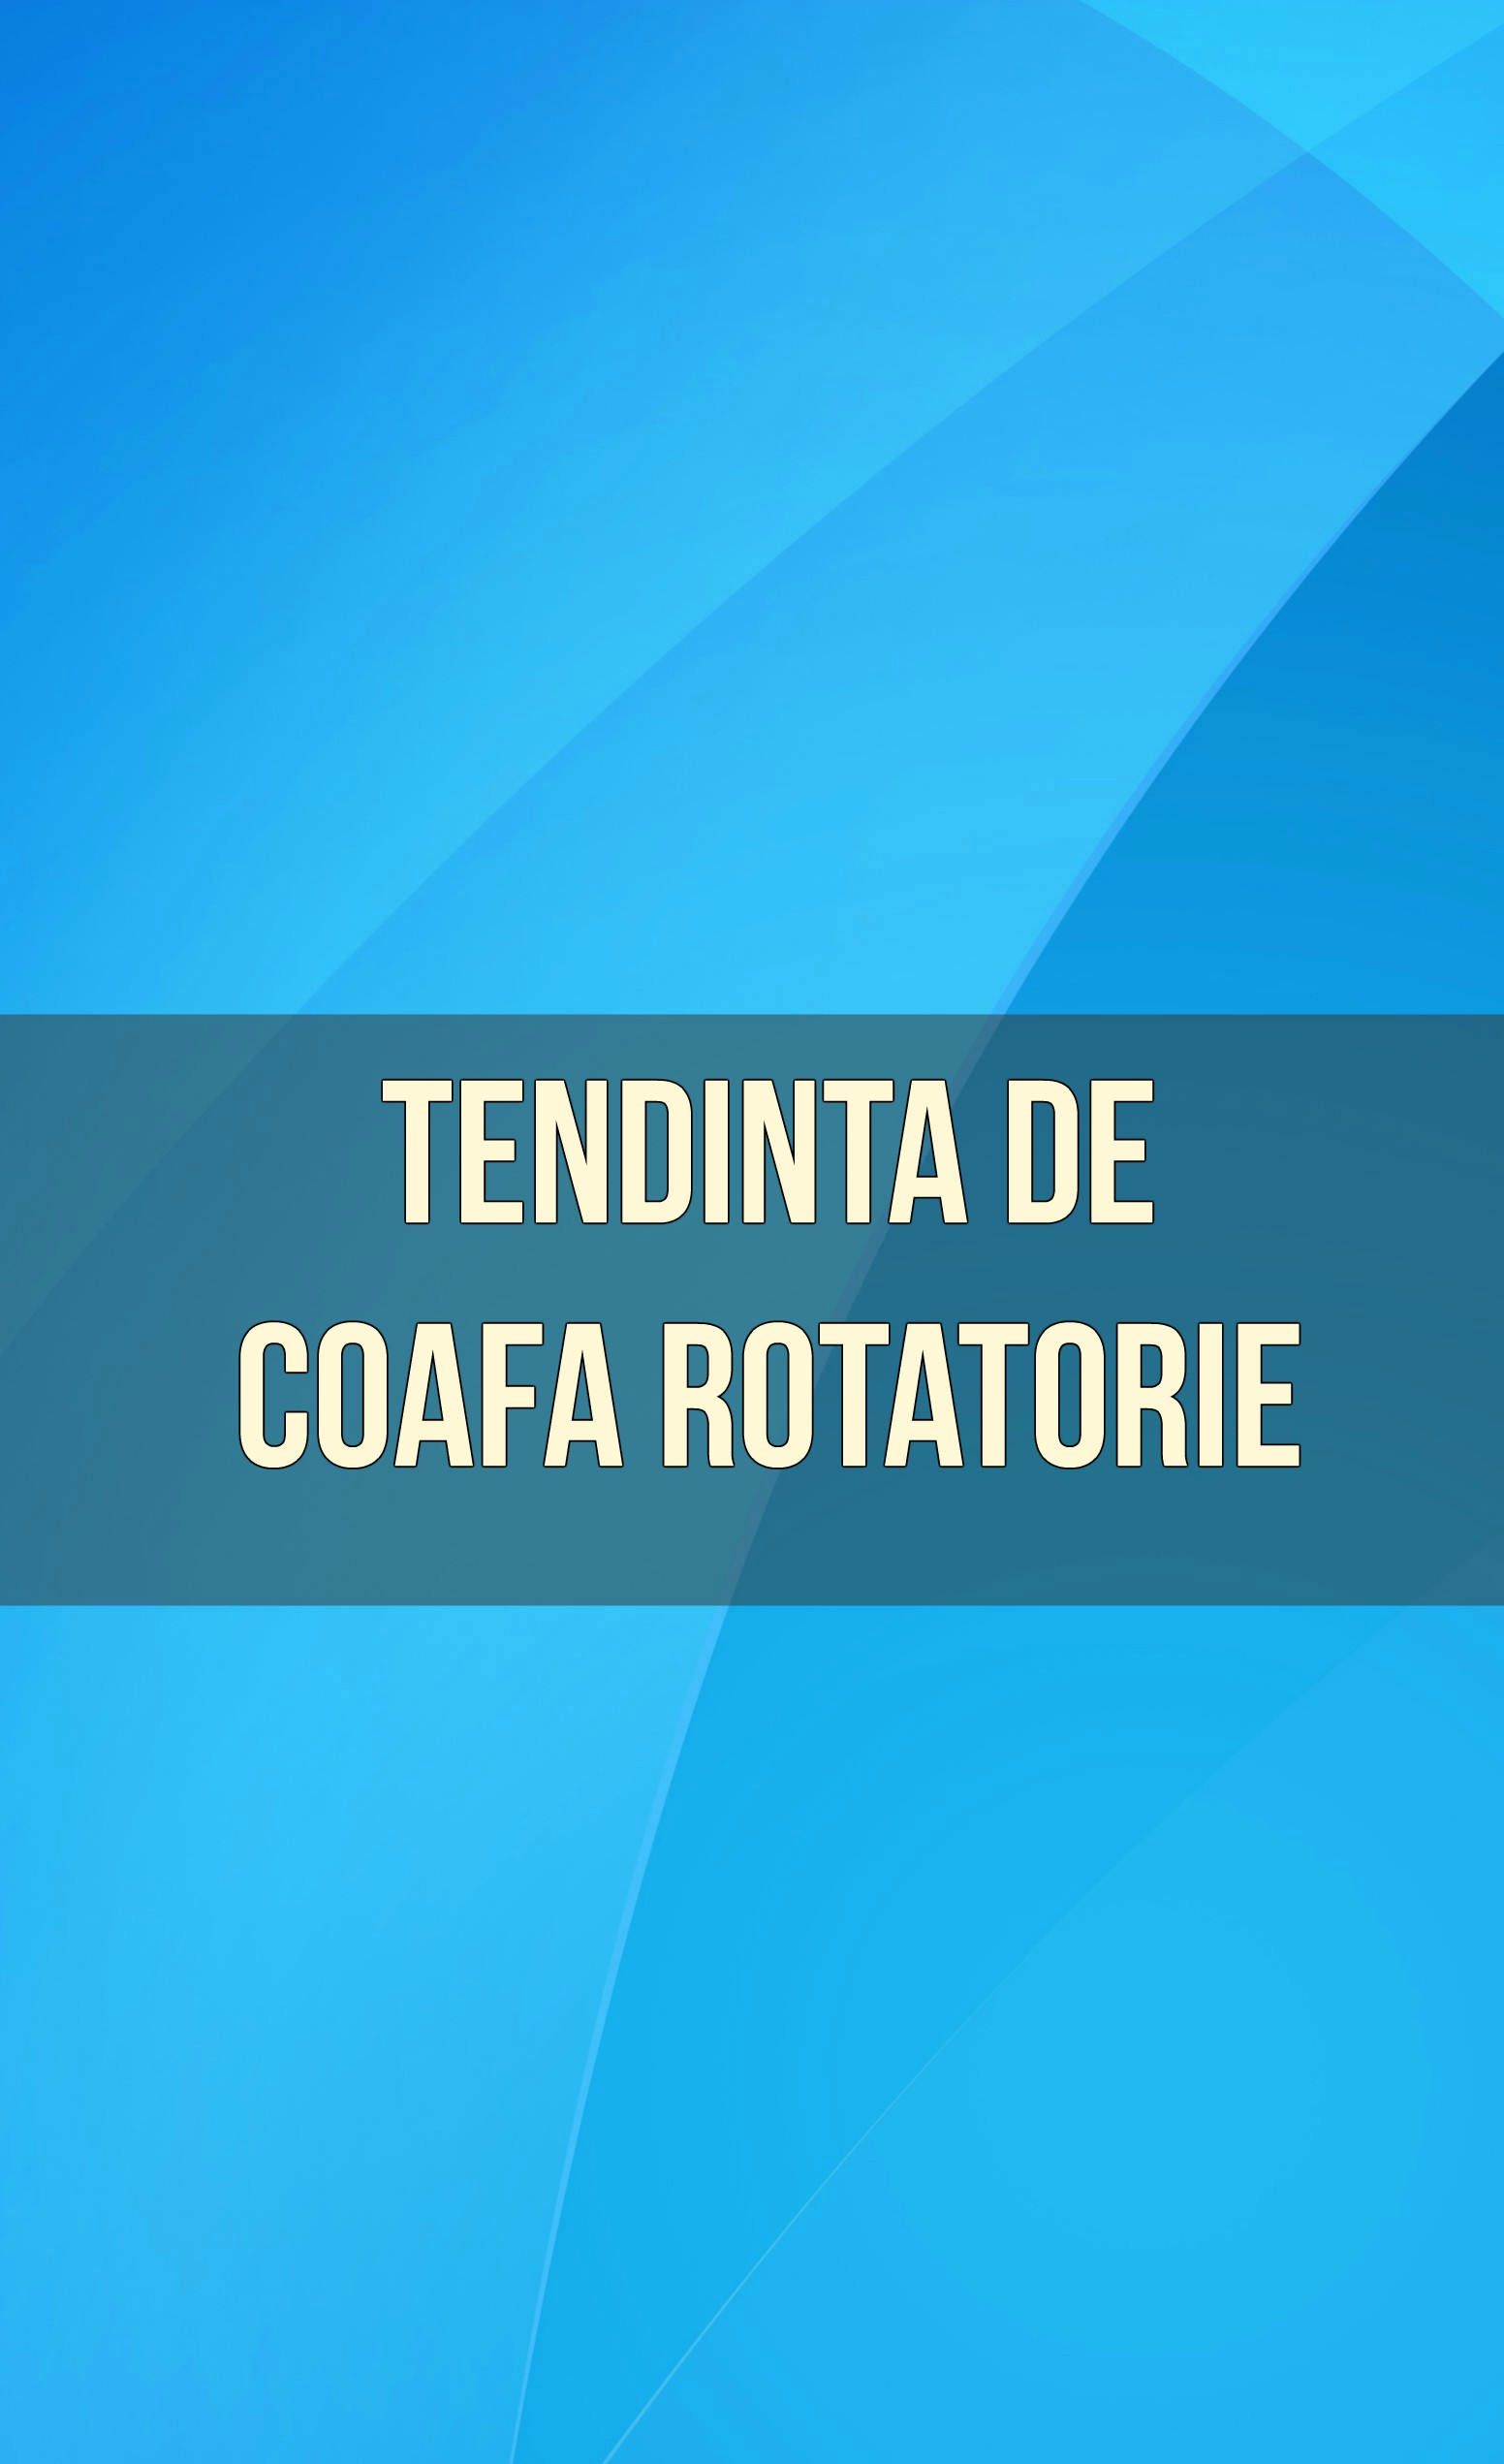 TENDINITA COAFA ROTATORIE